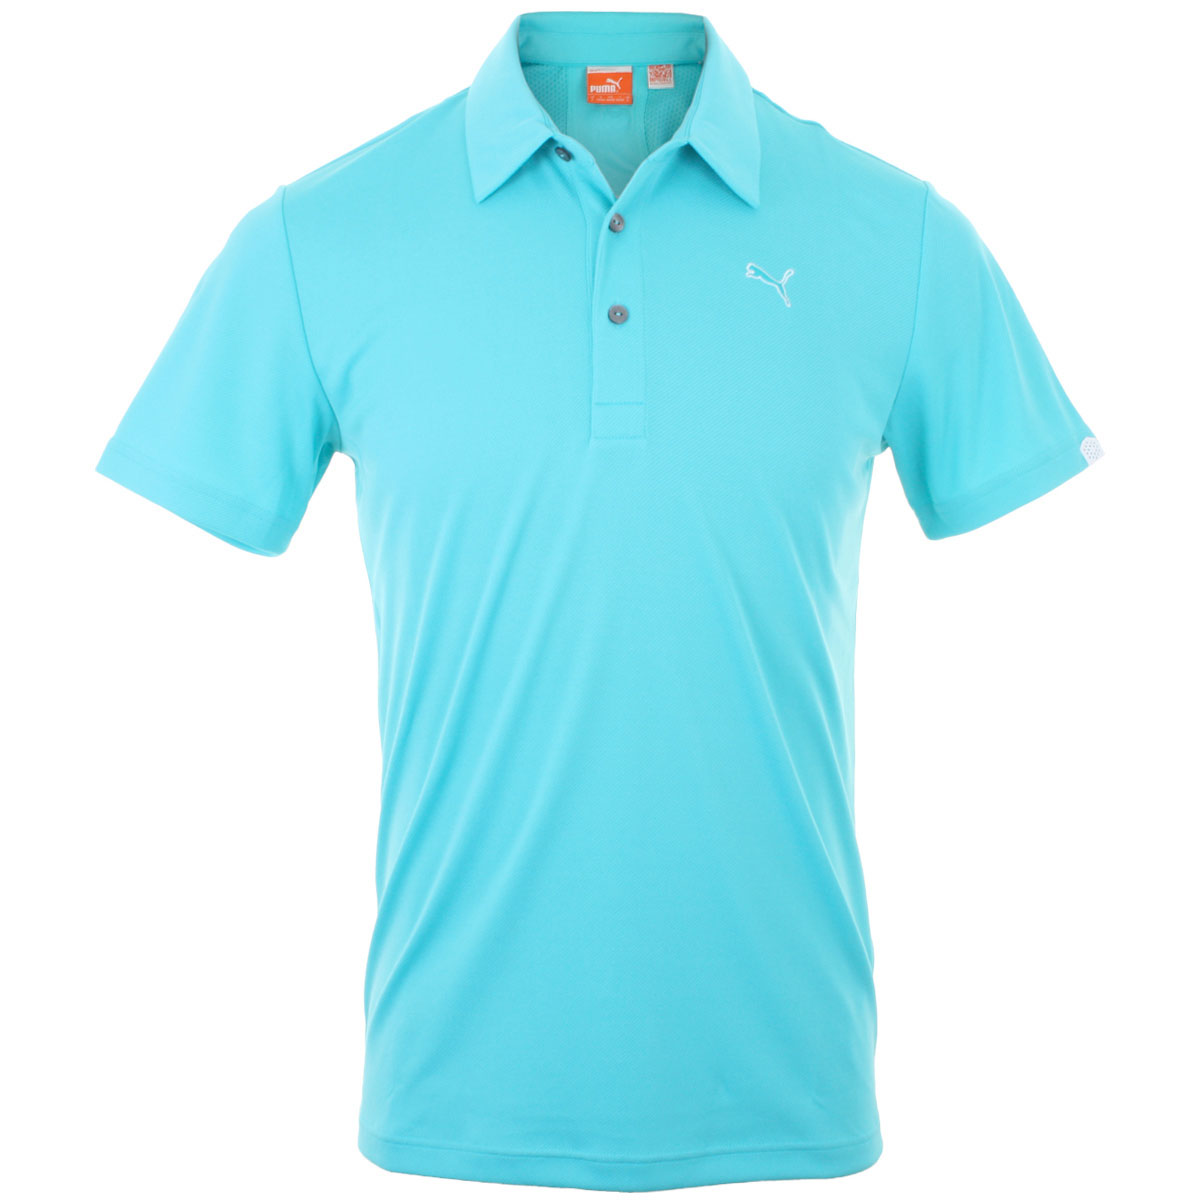 Puma golf mens golf tech performance polo shirt coolcell for Mens puma golf shirts